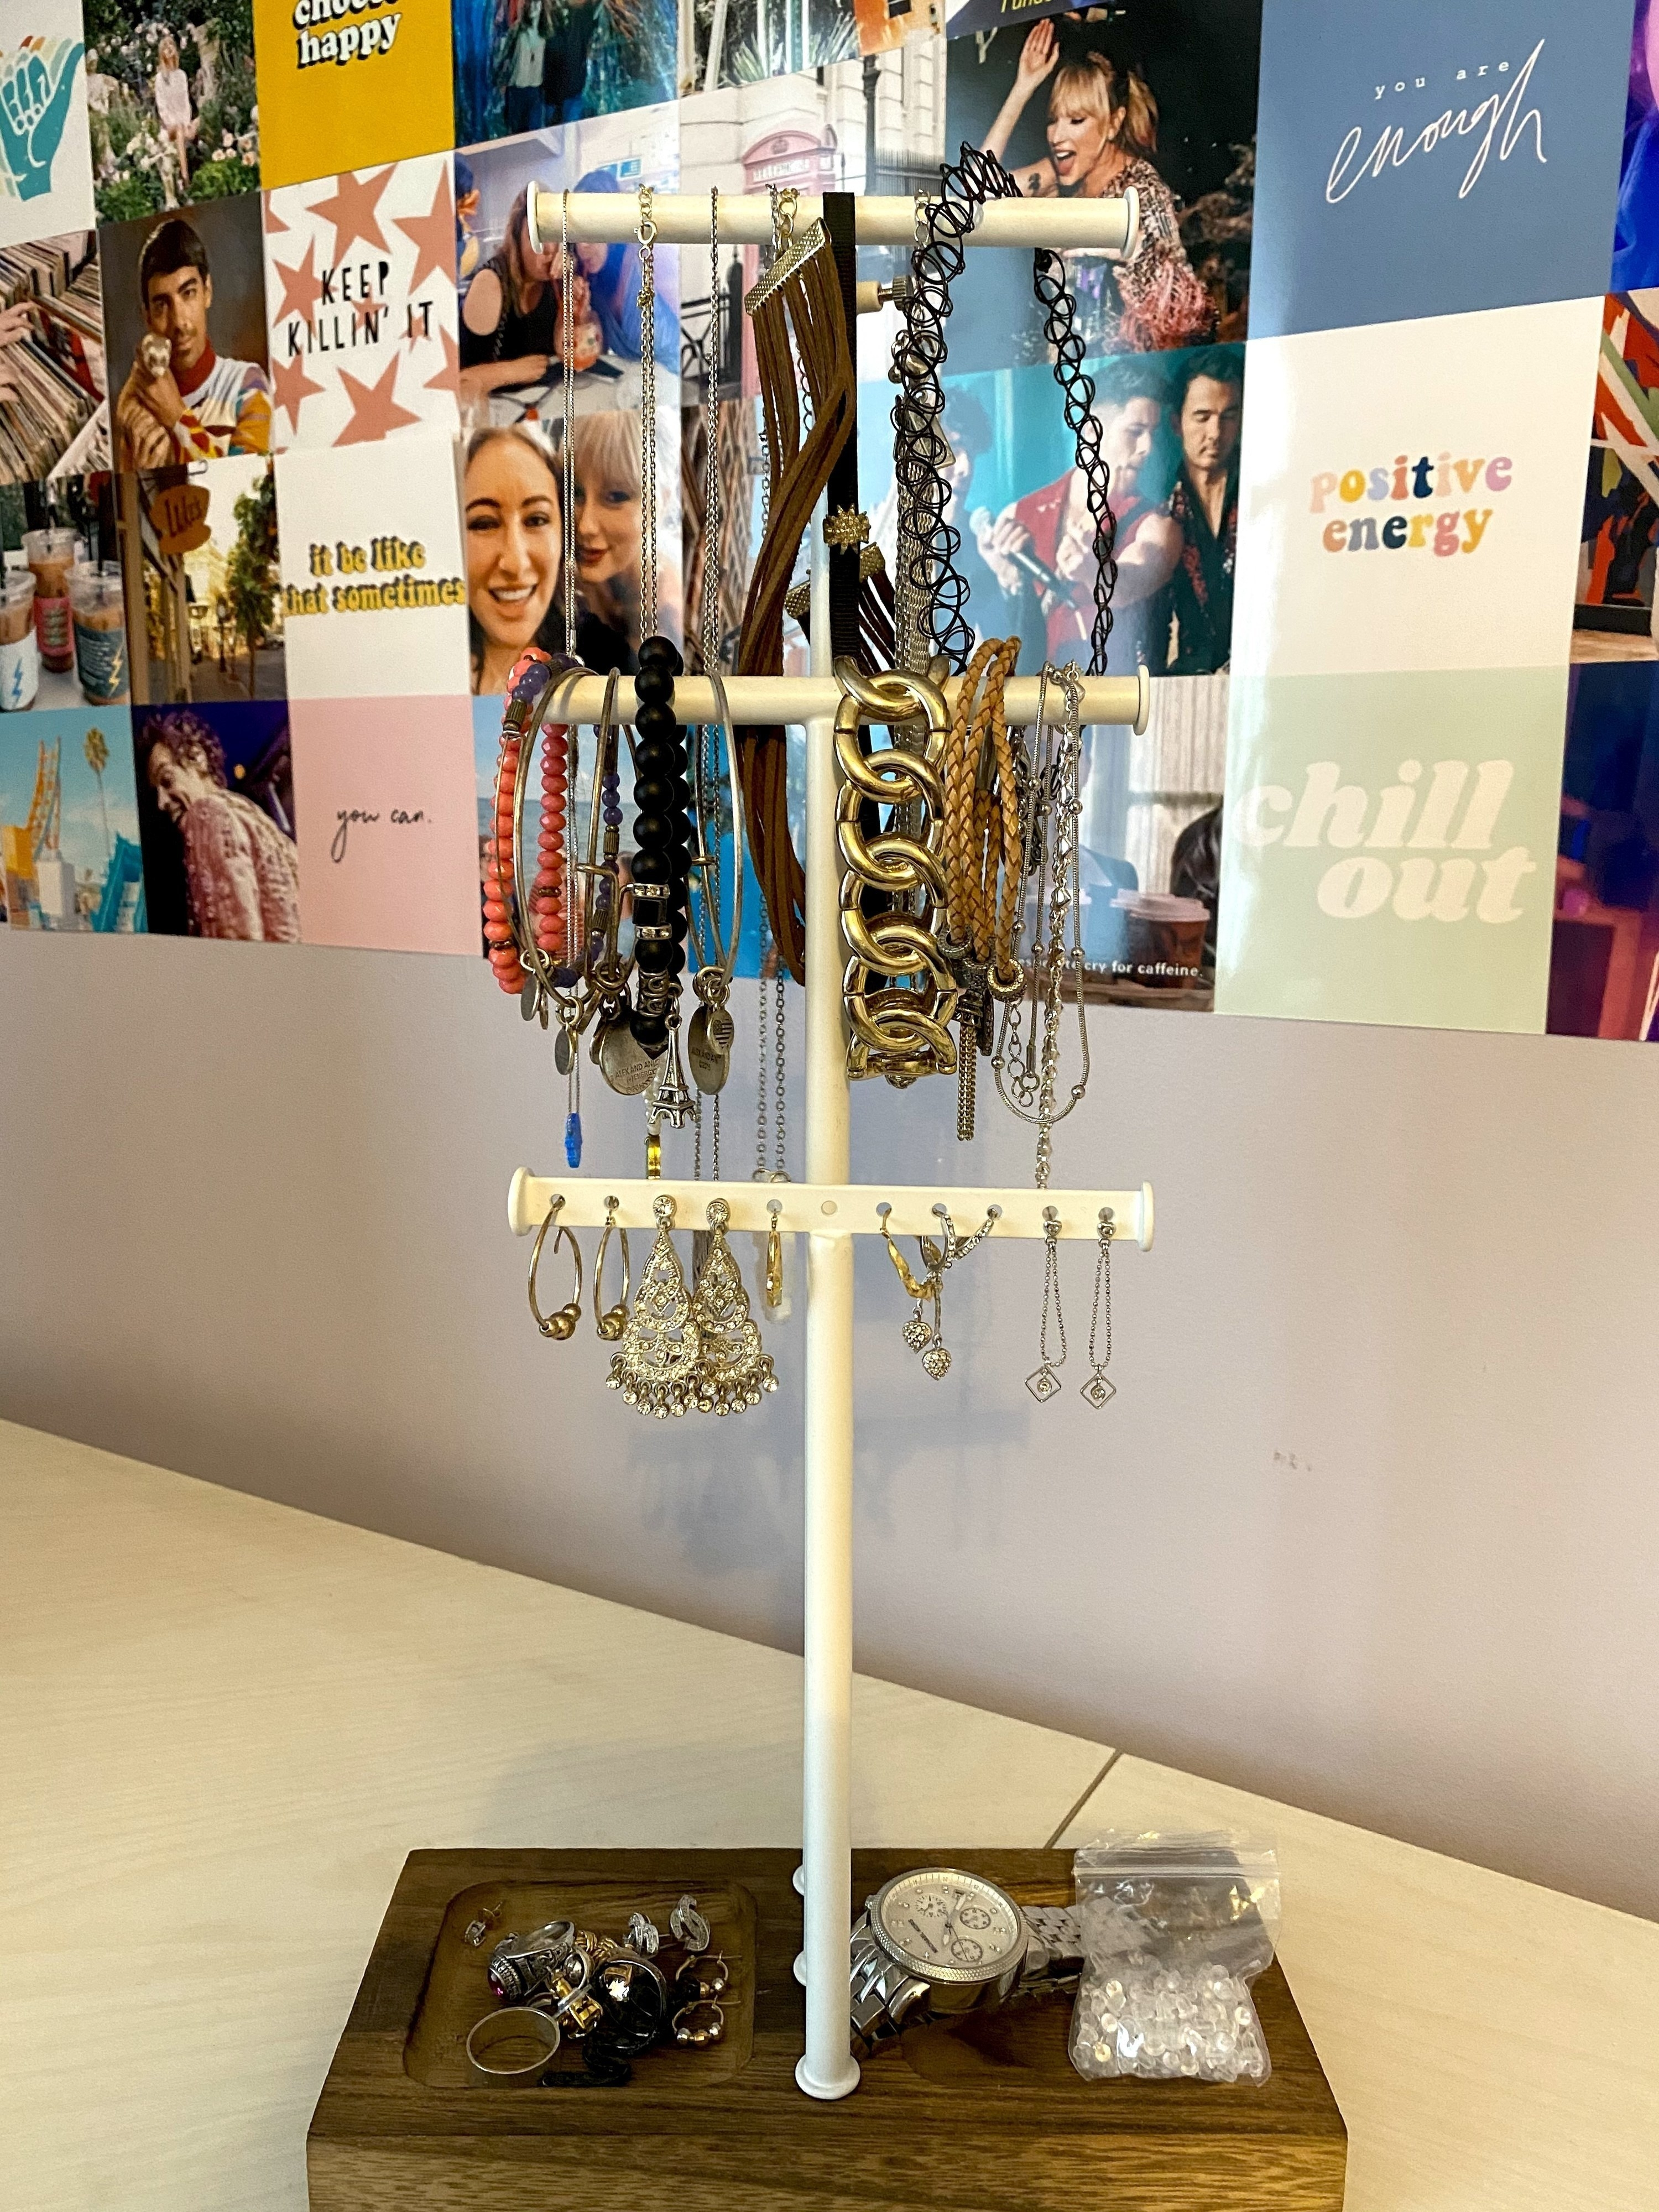 BuzzFeed Editor Samantha Wieder's jewelry tree holding necklaces, bracelets, and earrings